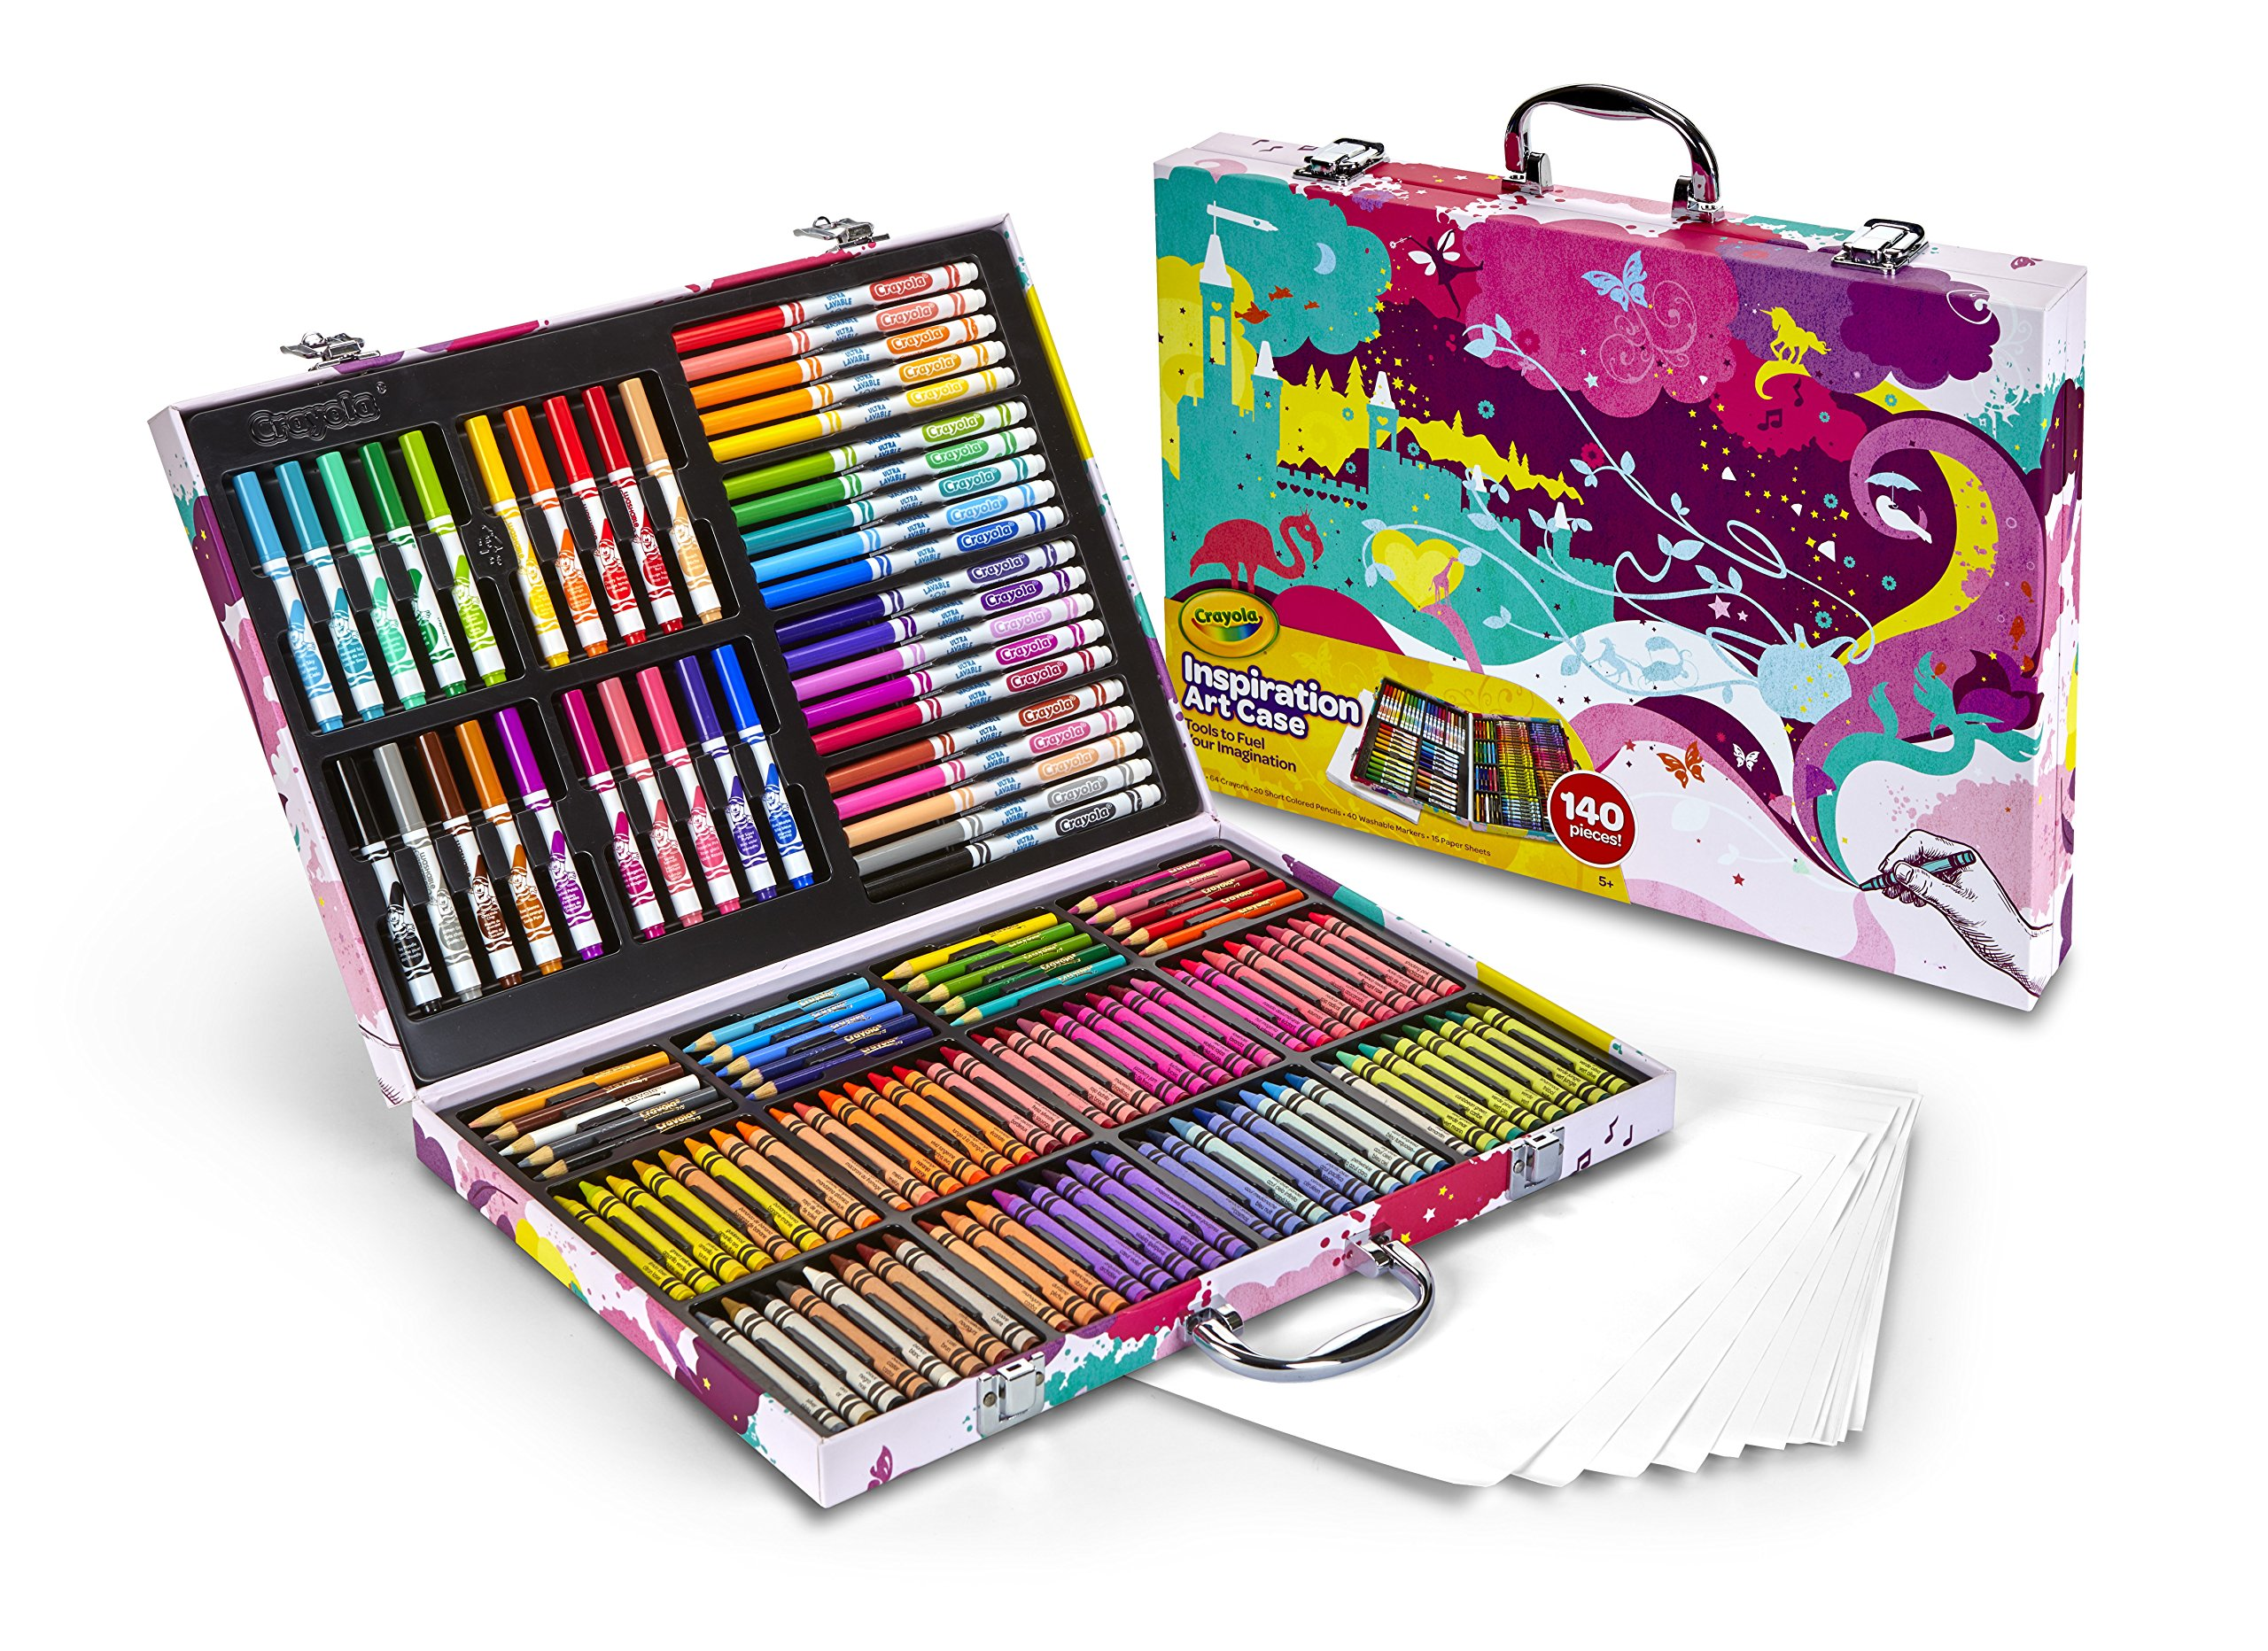 Crayola Inspiration Art Case in Pink, 140 Art & Coloring Supplies, Gift for Girls